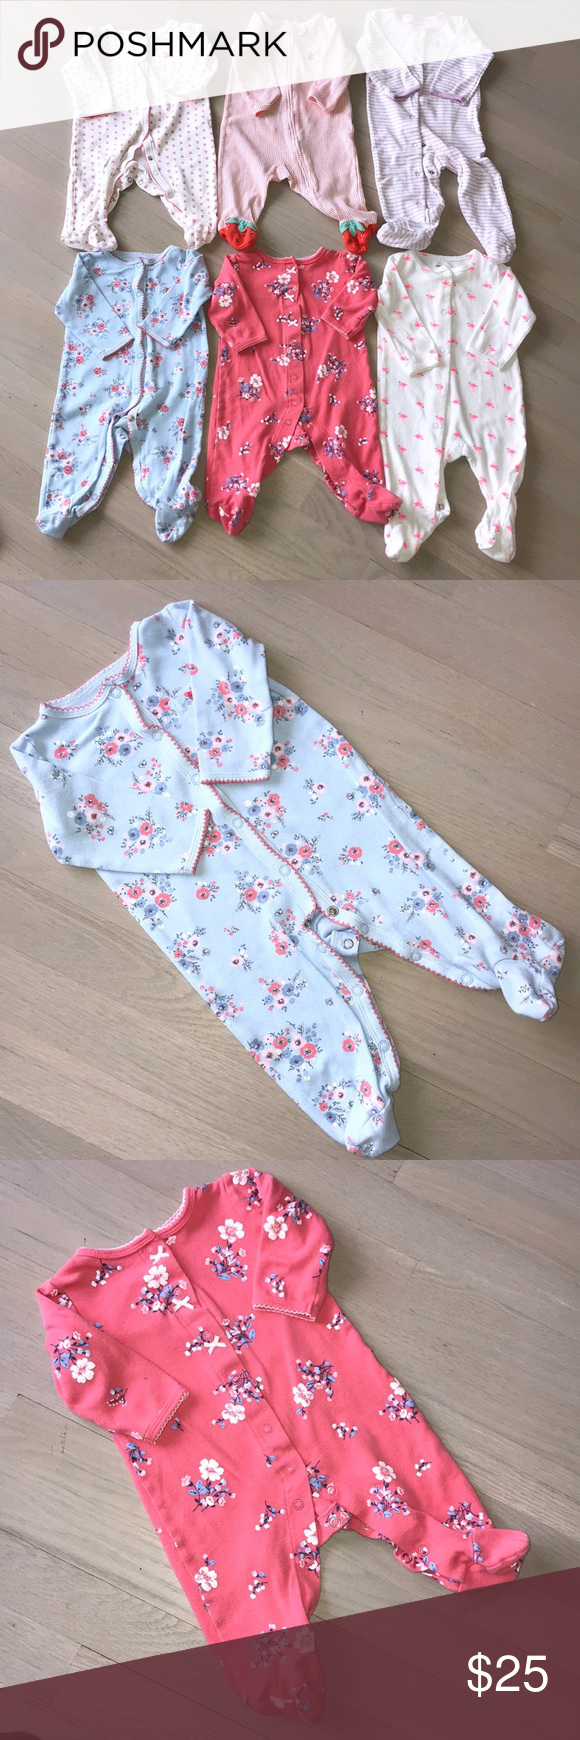 291e98485 Bundle 6 month footed pajamas - 6 carters footed pjs- all carters ...